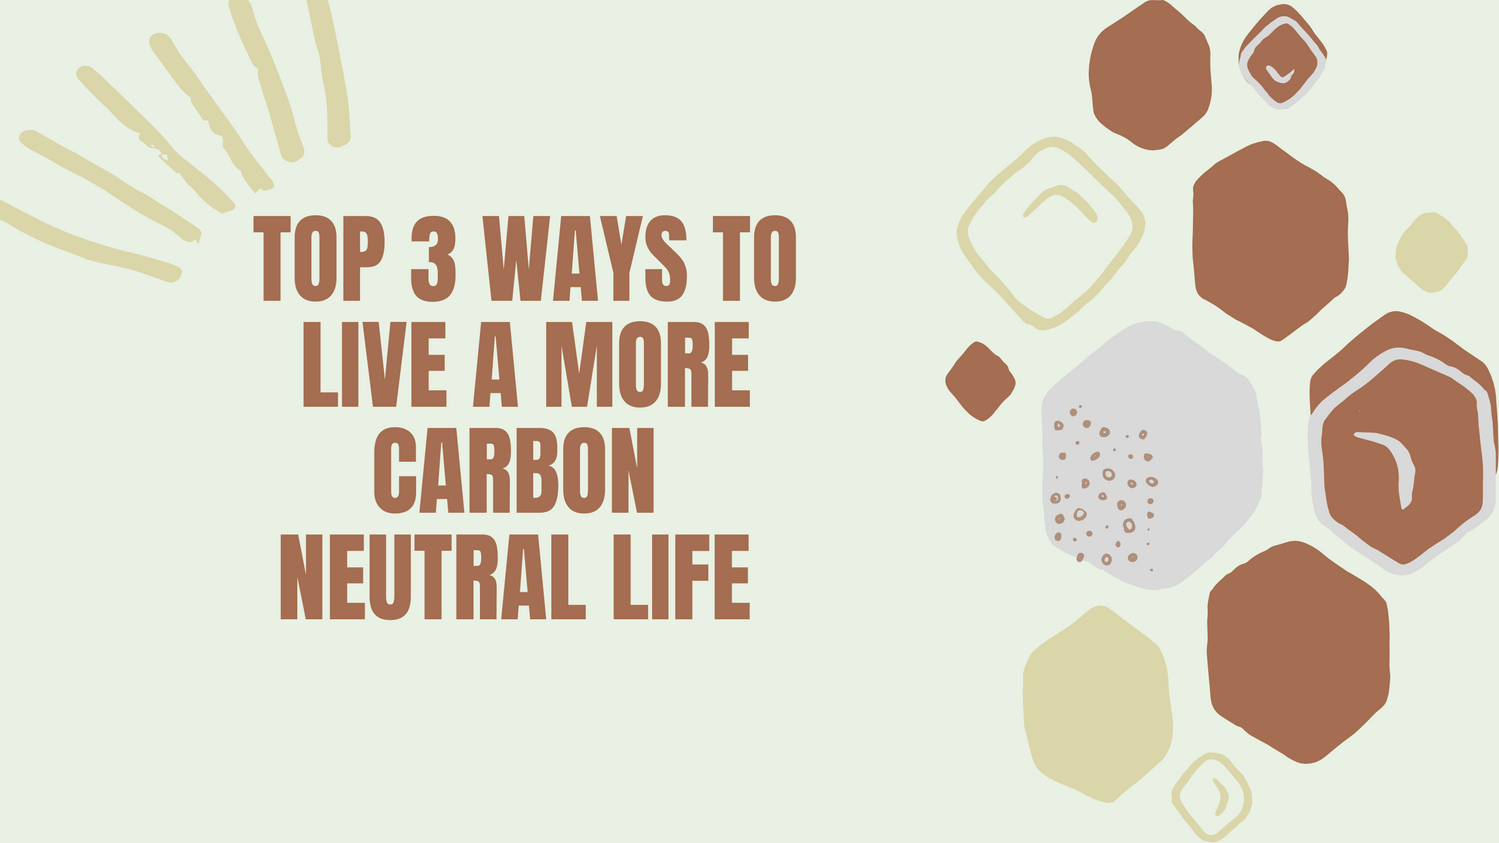 Top 2 Tips to lead a more carbon neutral life